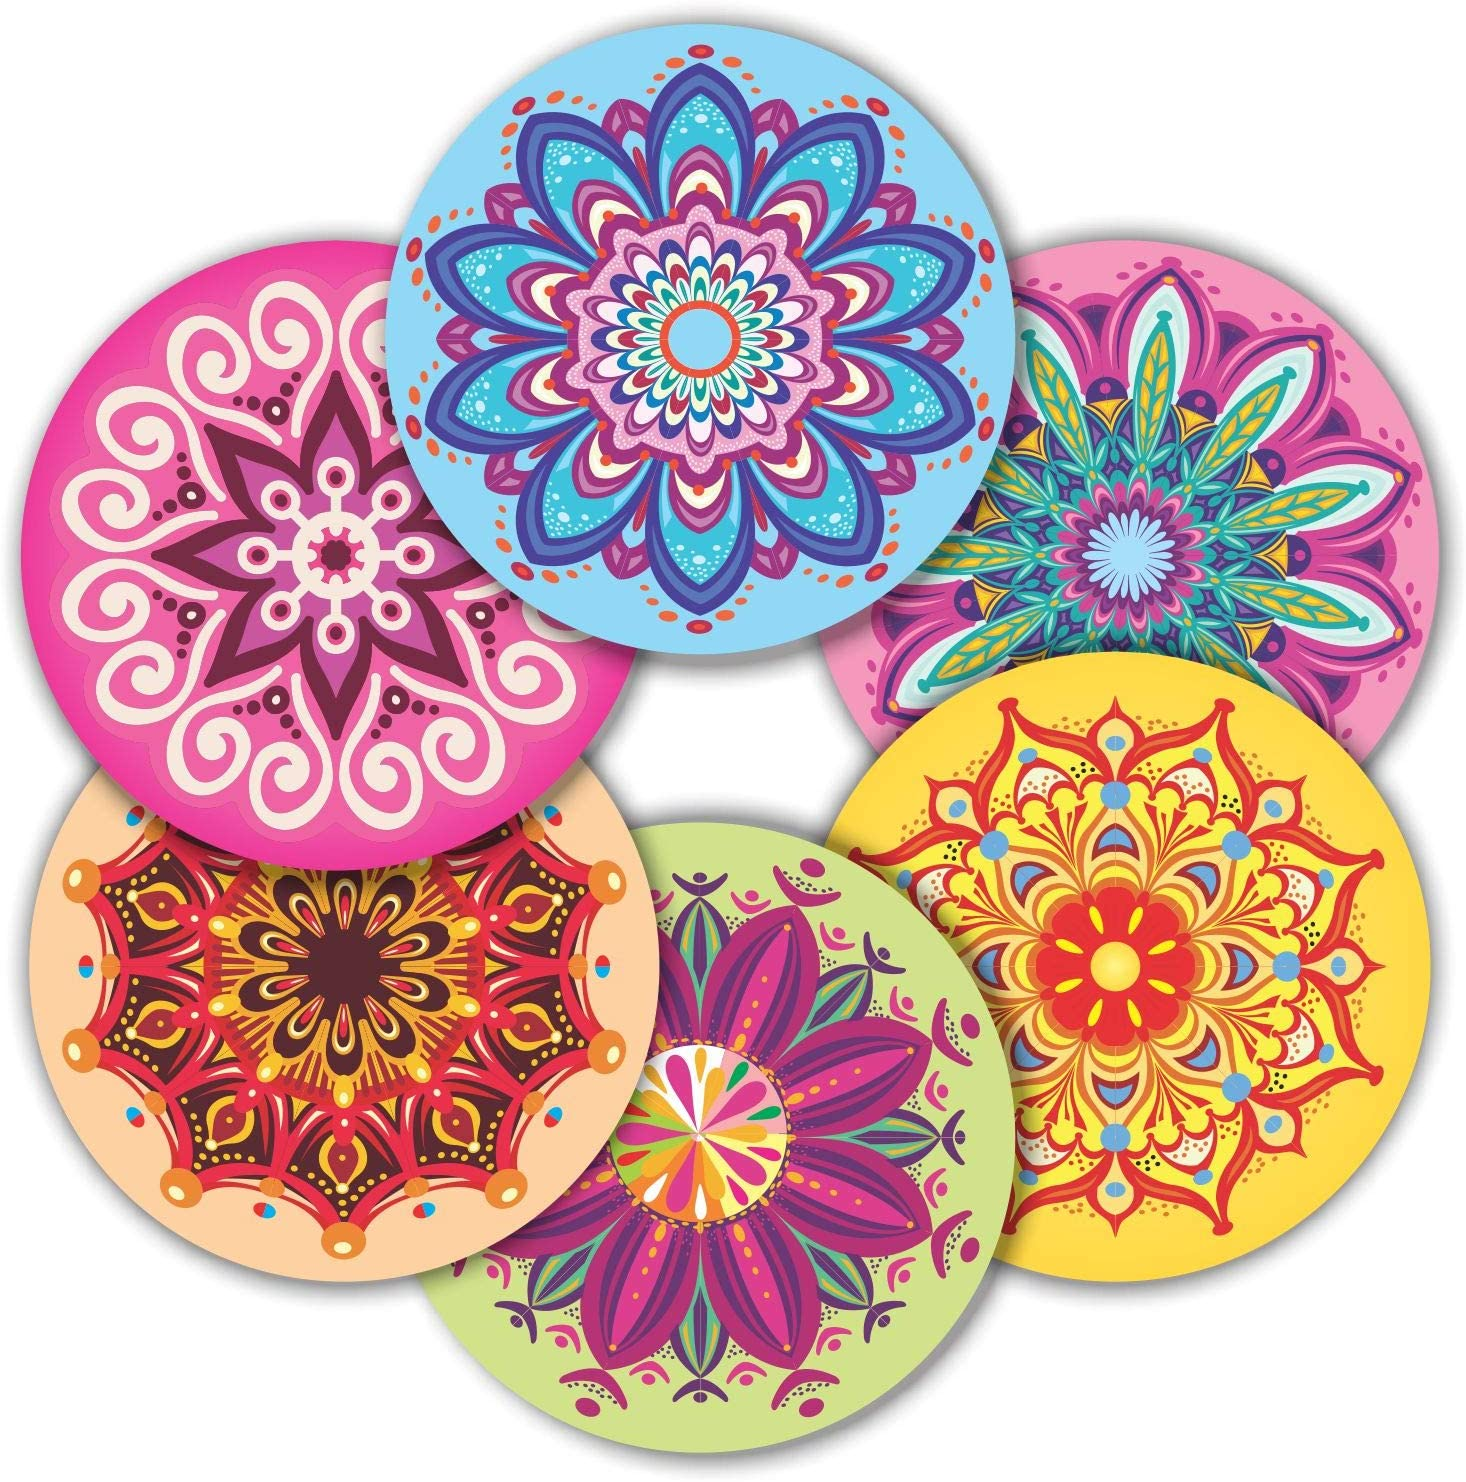 "Mandala Stickers Seals Labels - (Pack of 120) 2"" Large Round Decals for Wall Laptop Water Bottles Holiday Greeting Cards Gift Envelopes Boxes"